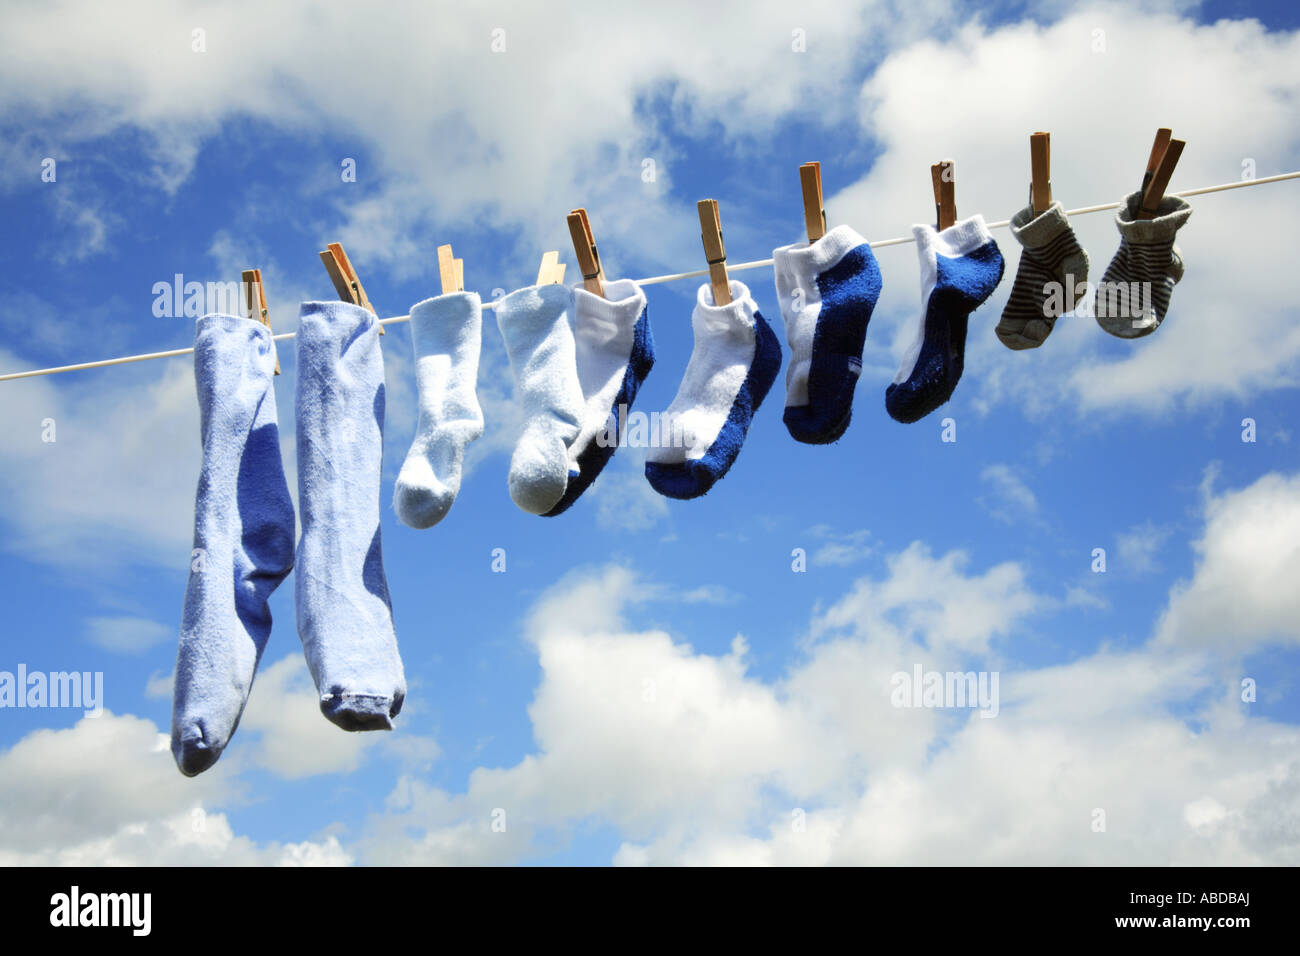 A row of freshly washed socks of assorted sizes on a linen line. - Stock Image